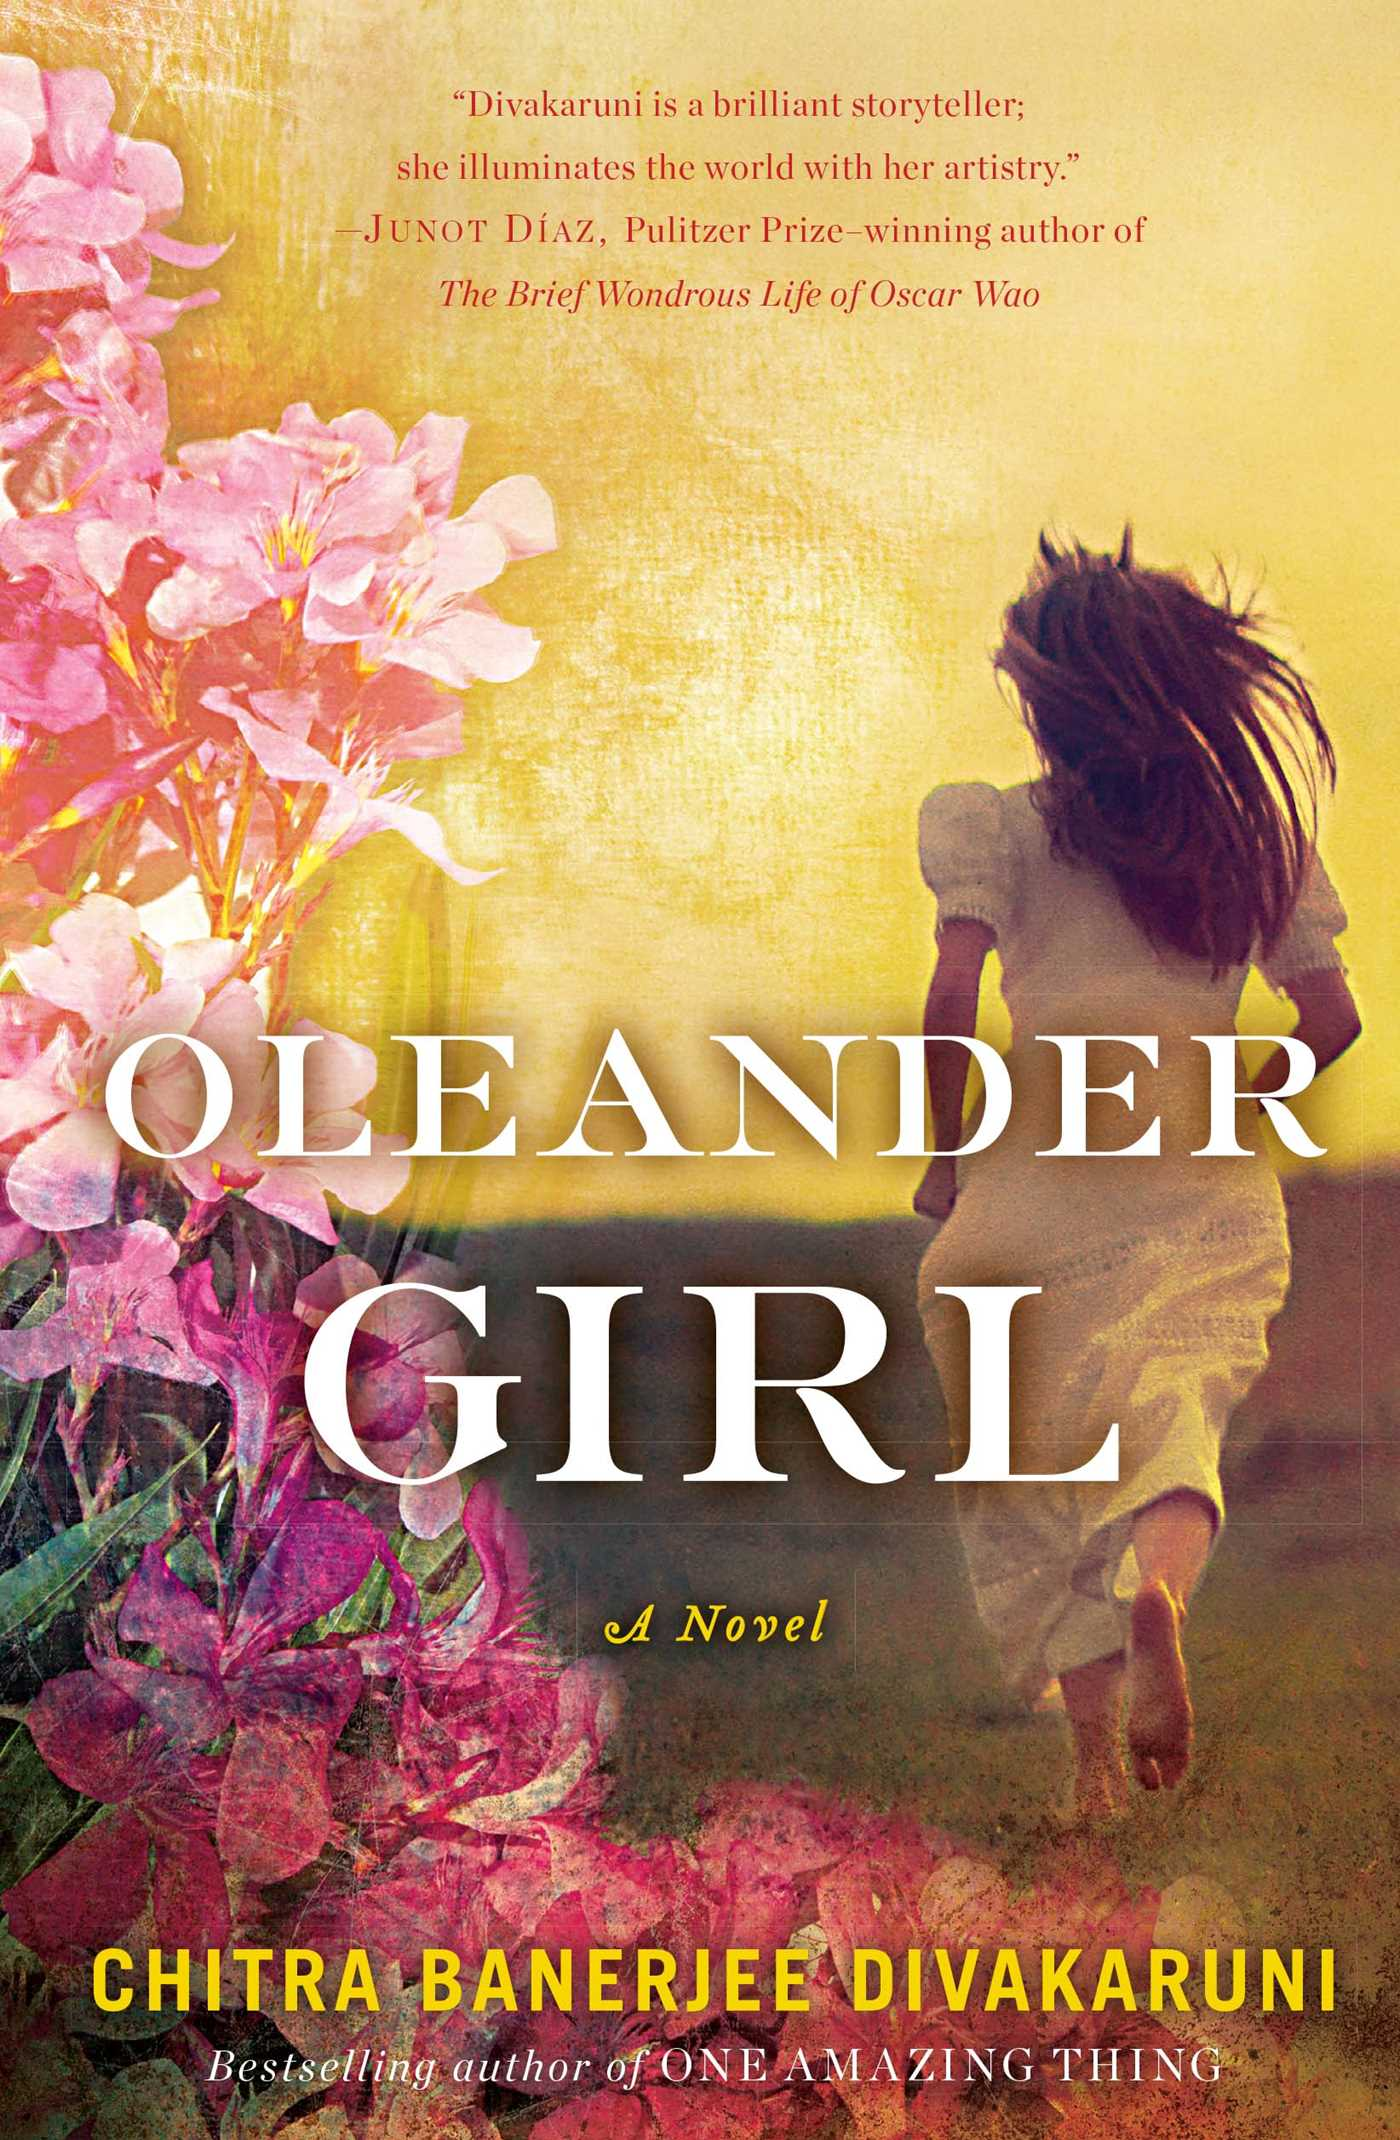 Oleander Girl by Chitra Banerjee Divakaruni